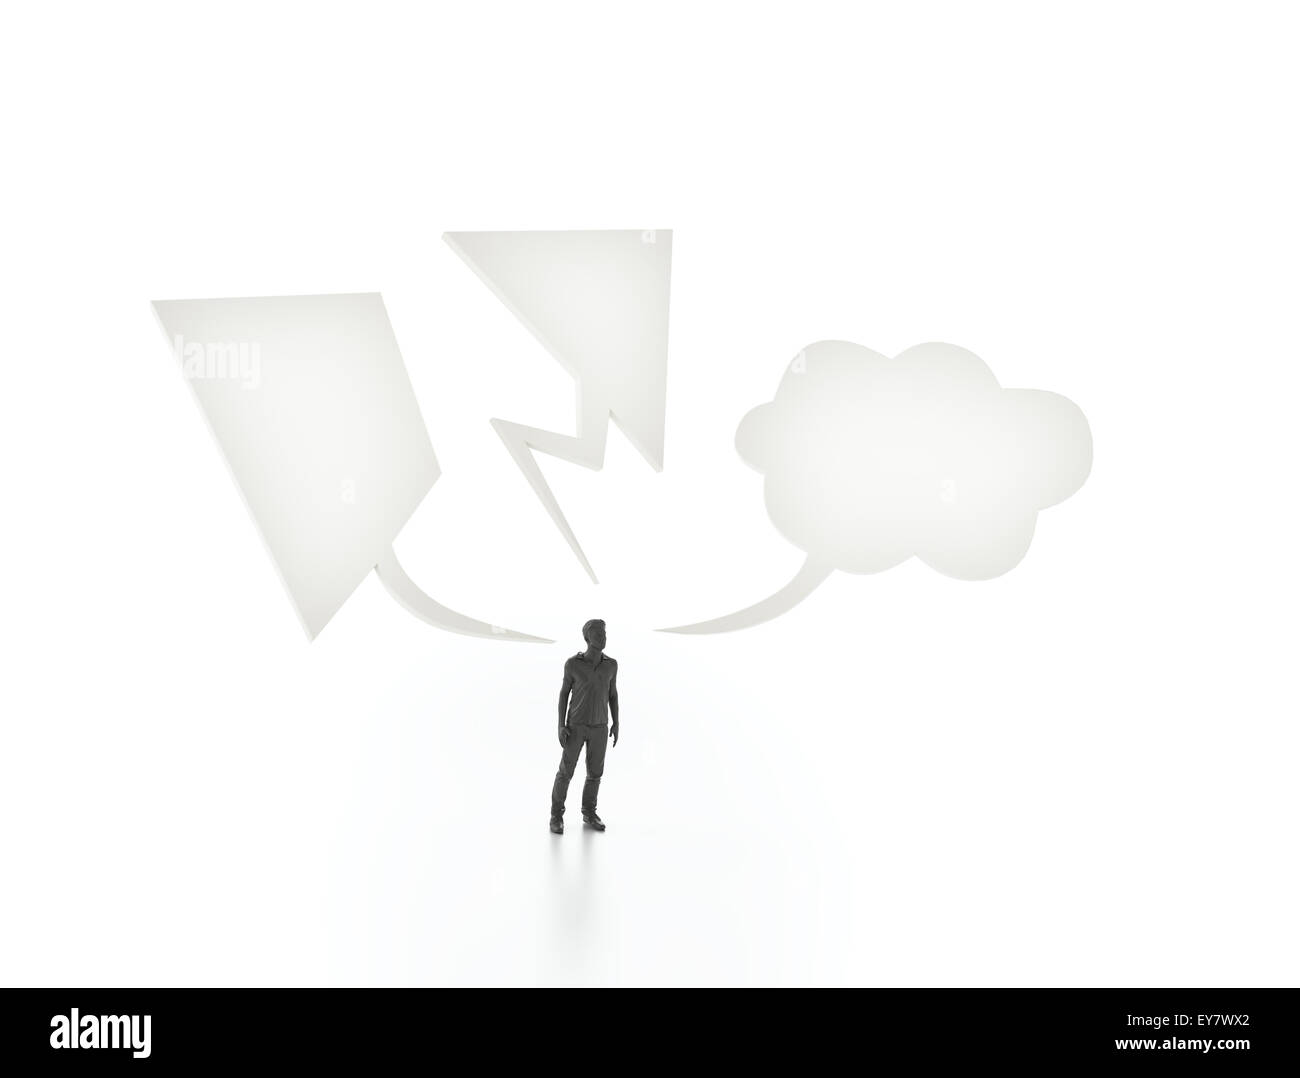 Man with three different speech bubbles - communication concept - Stock Image